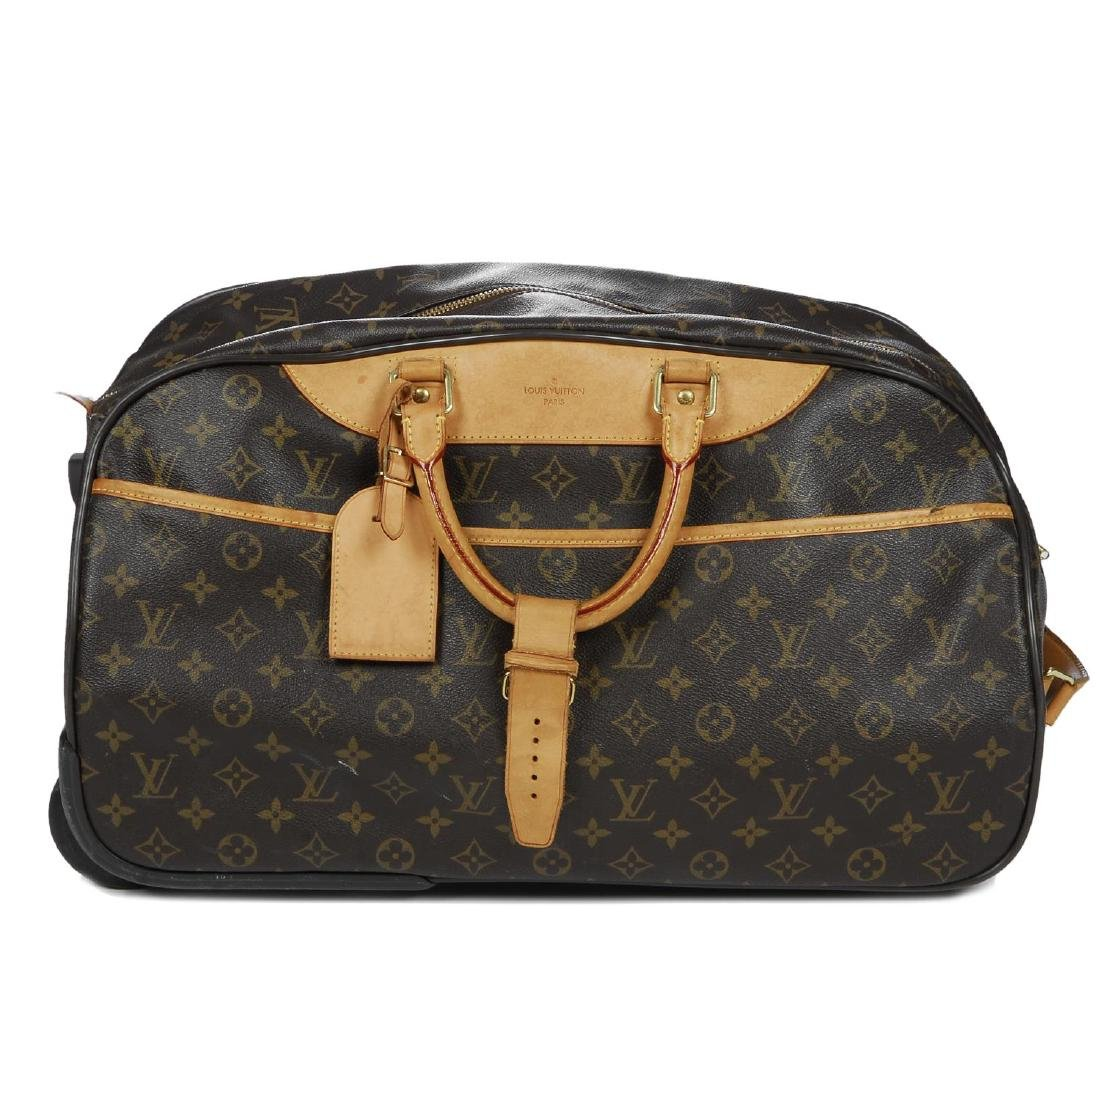 LOUIS VUITTON - a Monogram Eole 50 rolling duffle bag.